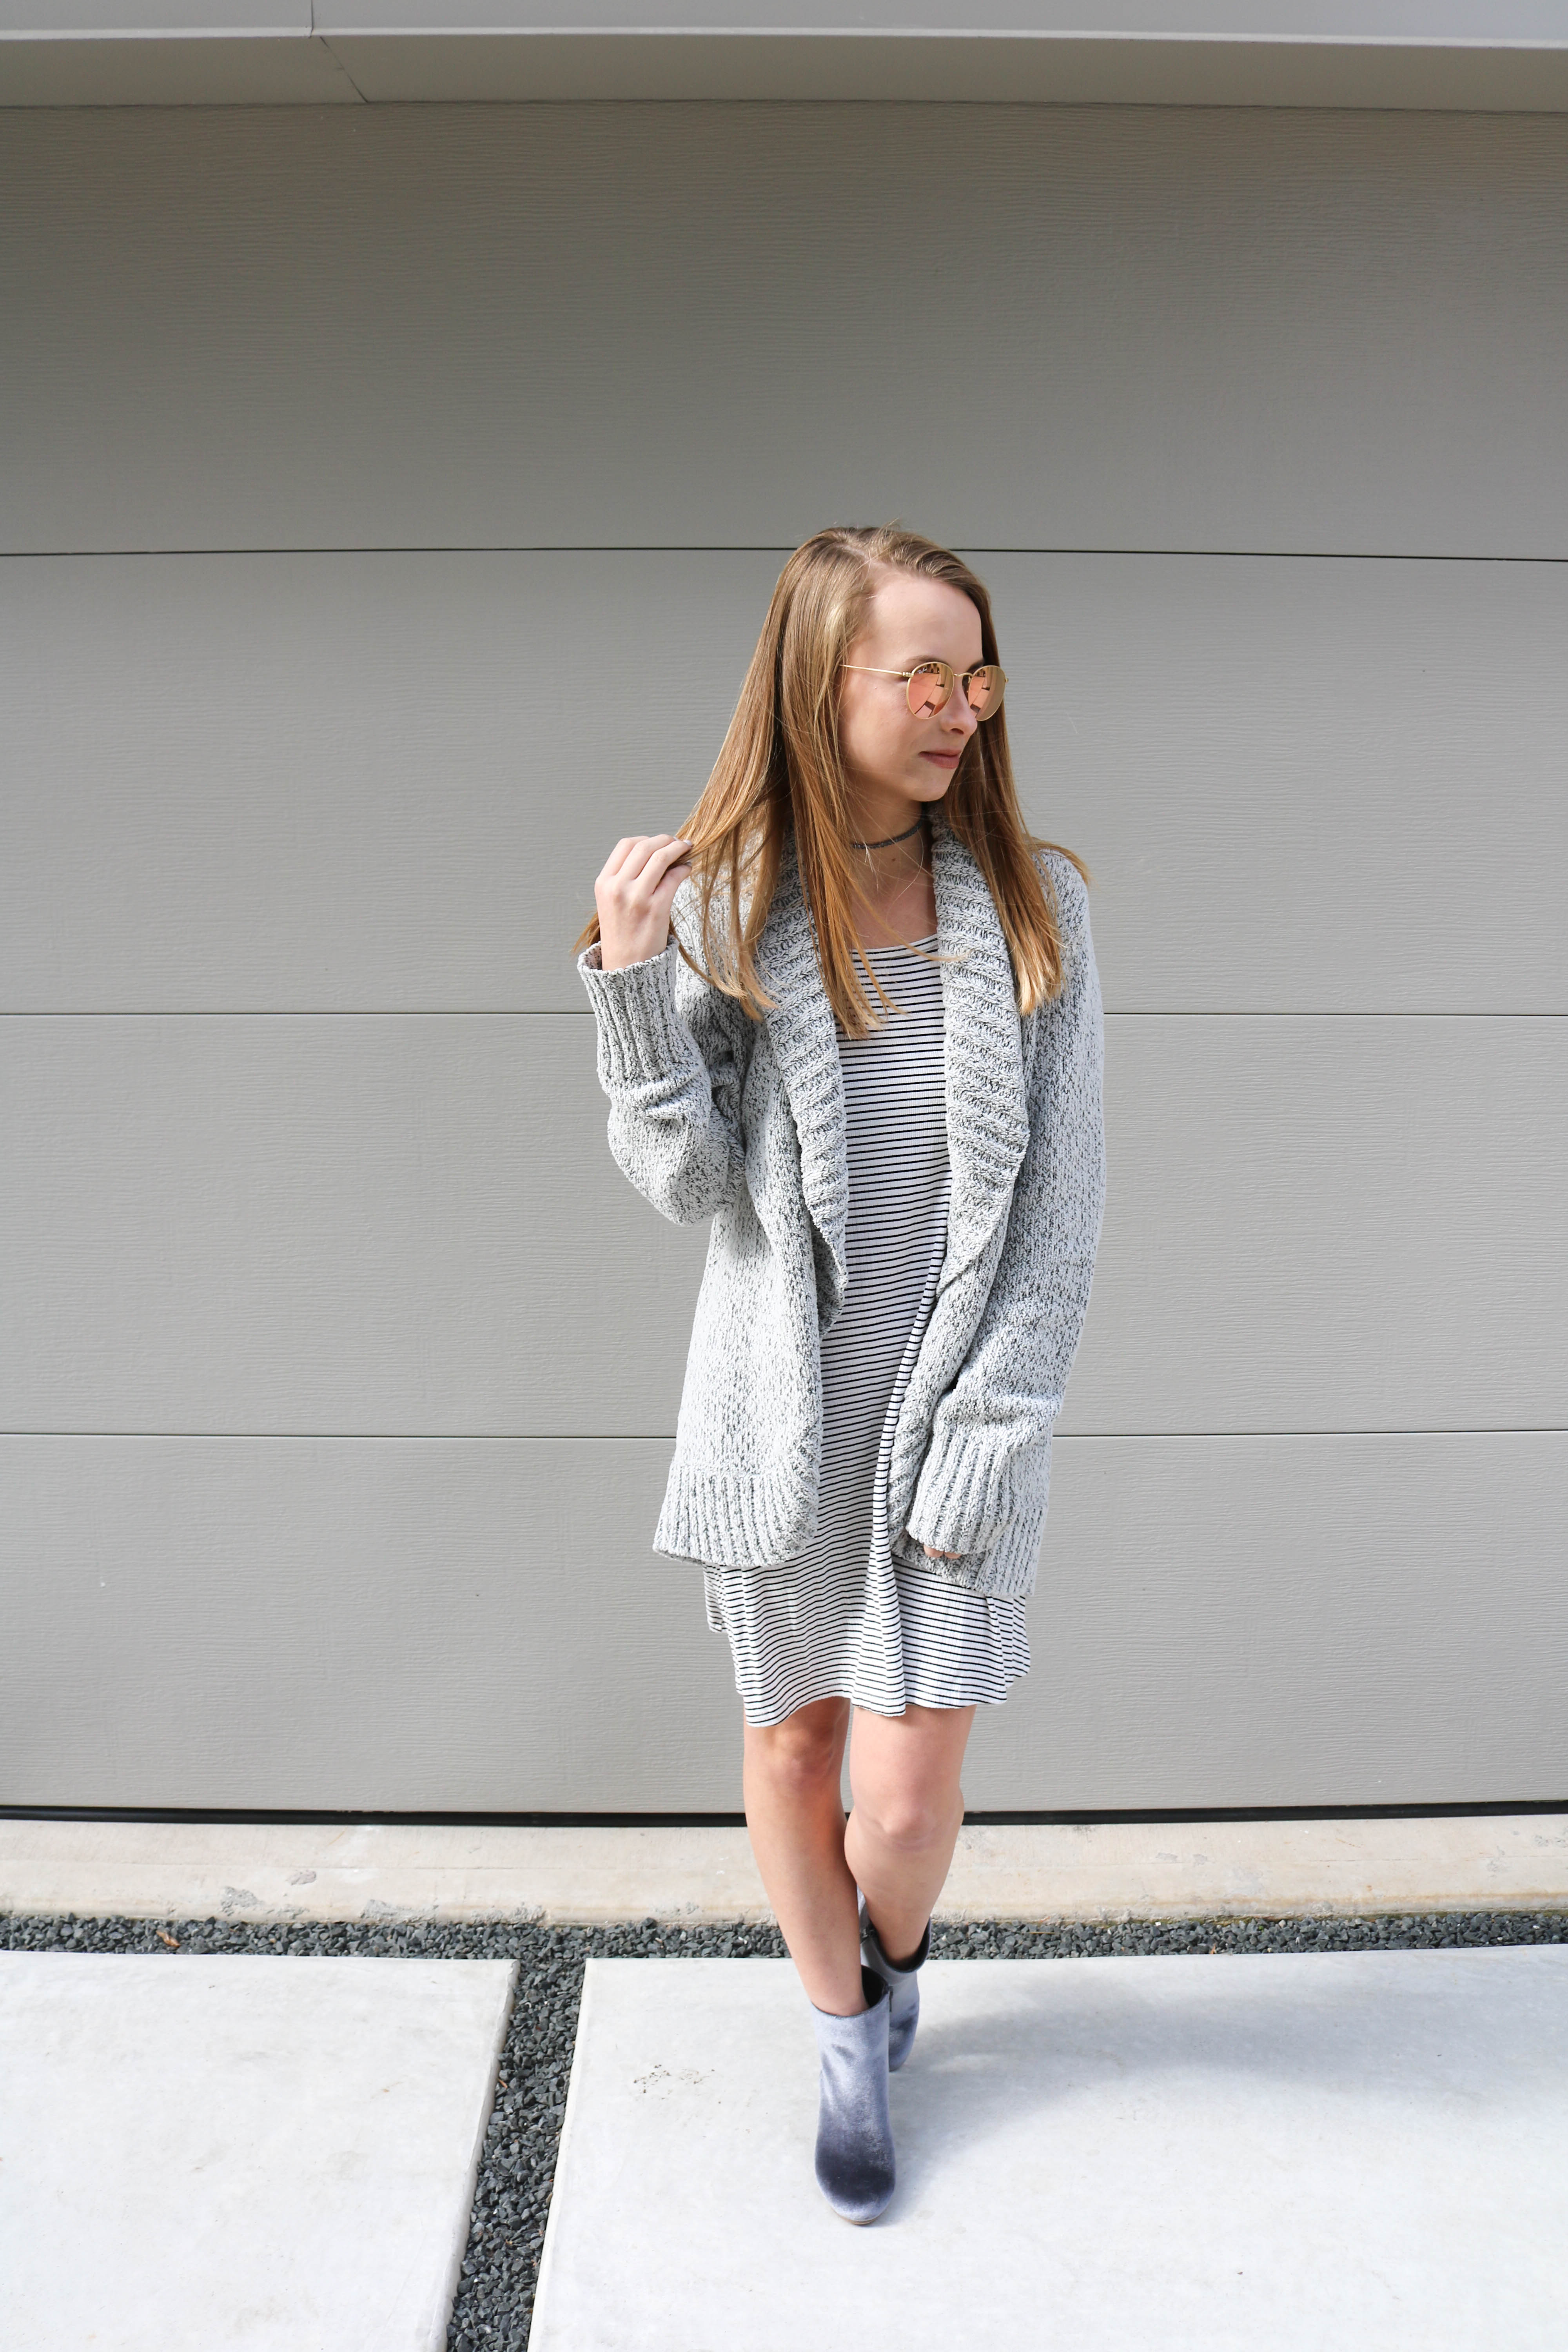 Chenille Cocoon Cardigan - The Blonder Life | The comfiest cardigan you will ever find, and now under $30!